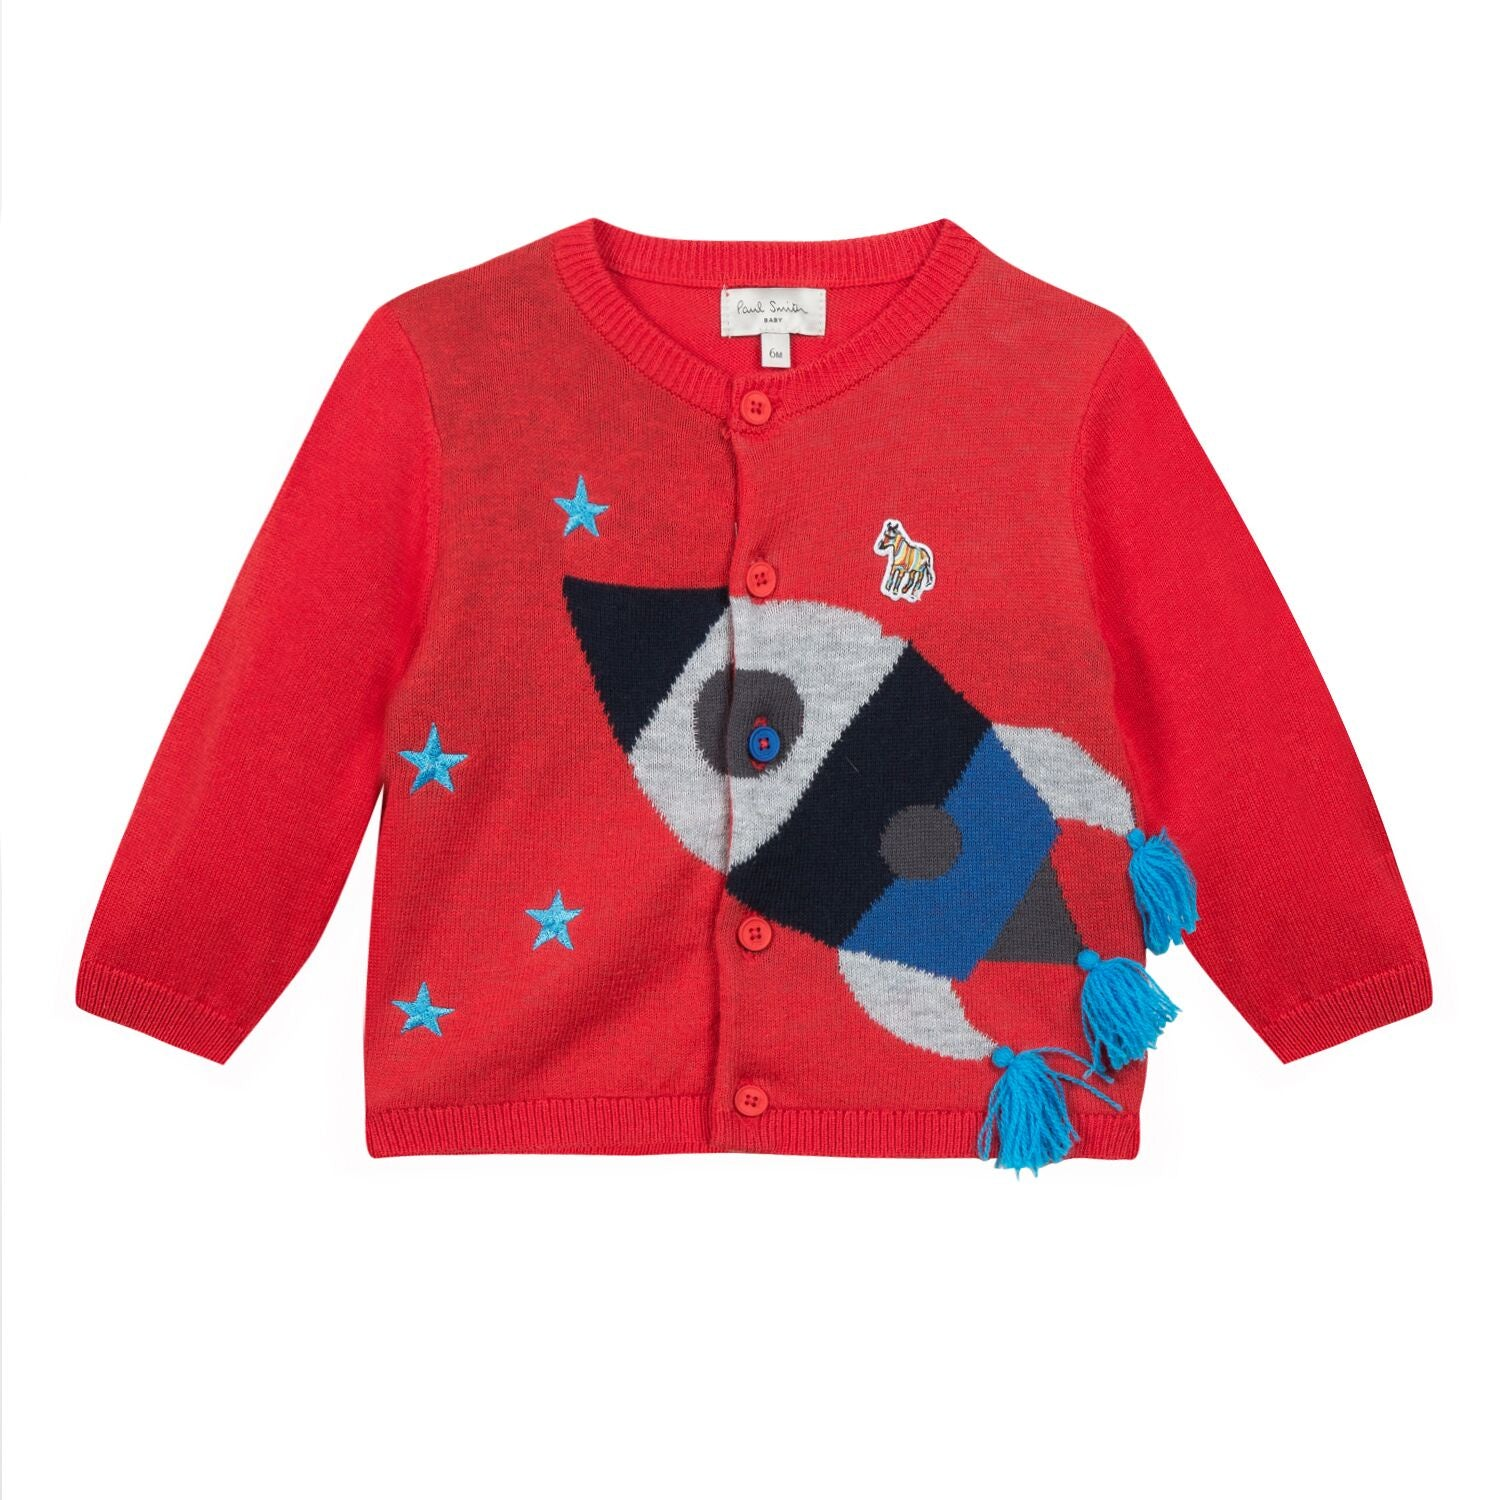 Paul Smith Baby Steve Rocket Red Cardigan